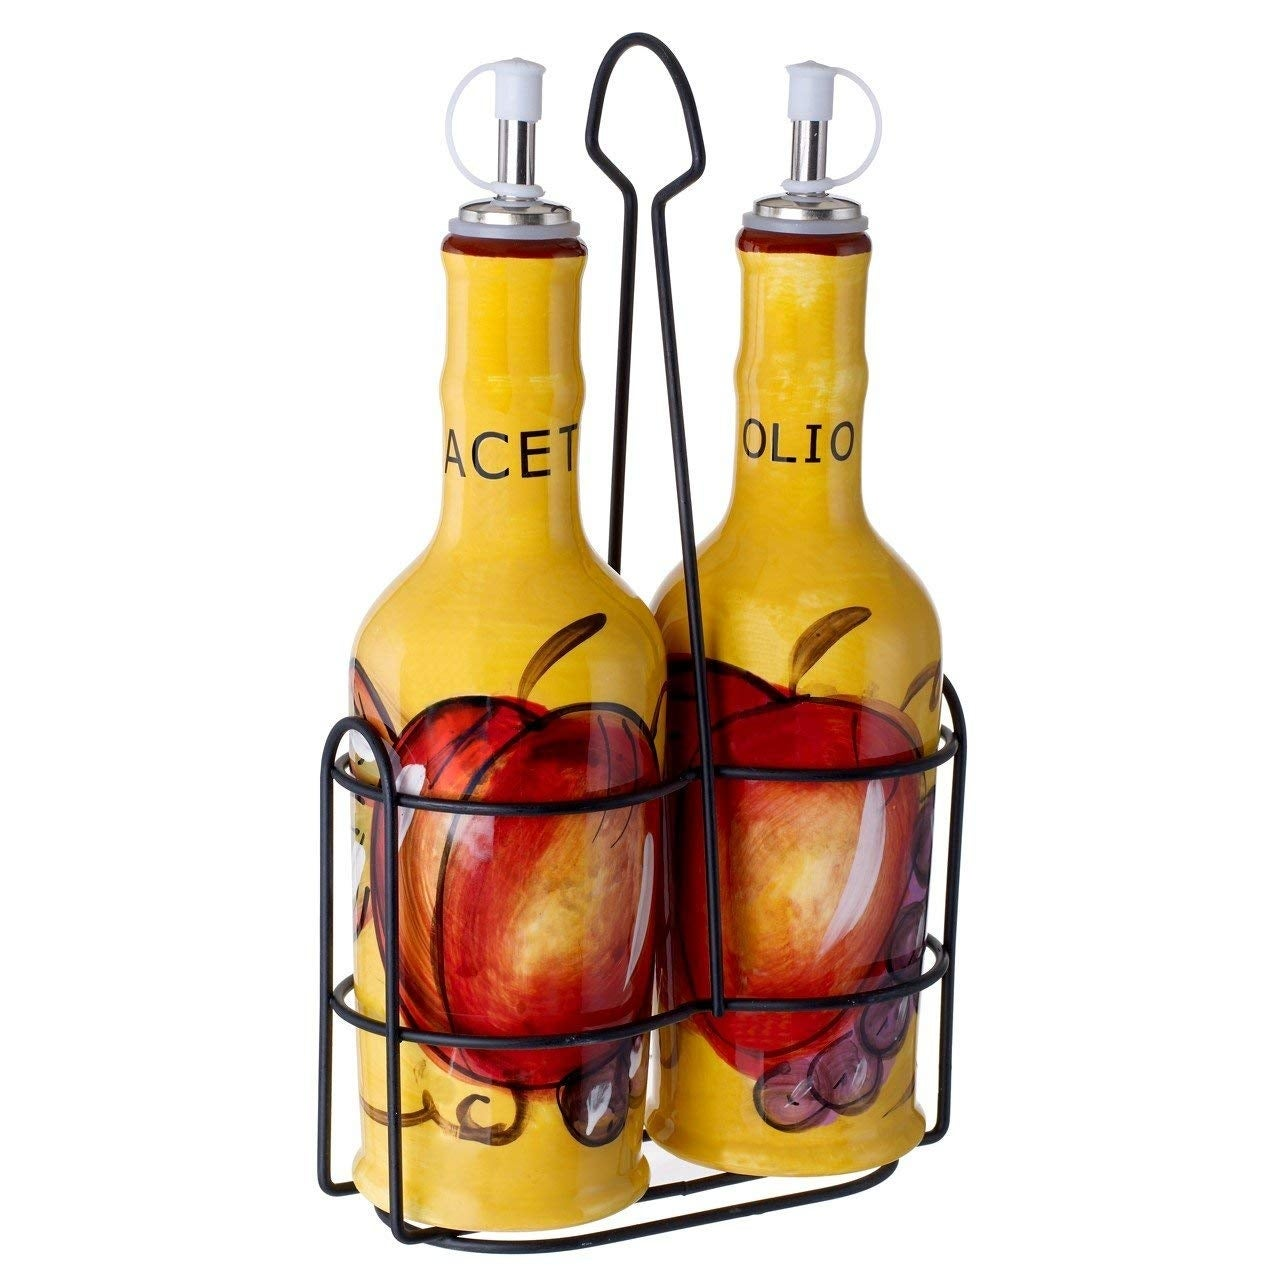 Cucina 4 X 4 cucina italiana ceramic oil and vinegar set 14 oz. with metal rack, yellow  - 4 x 4 x 9 inches